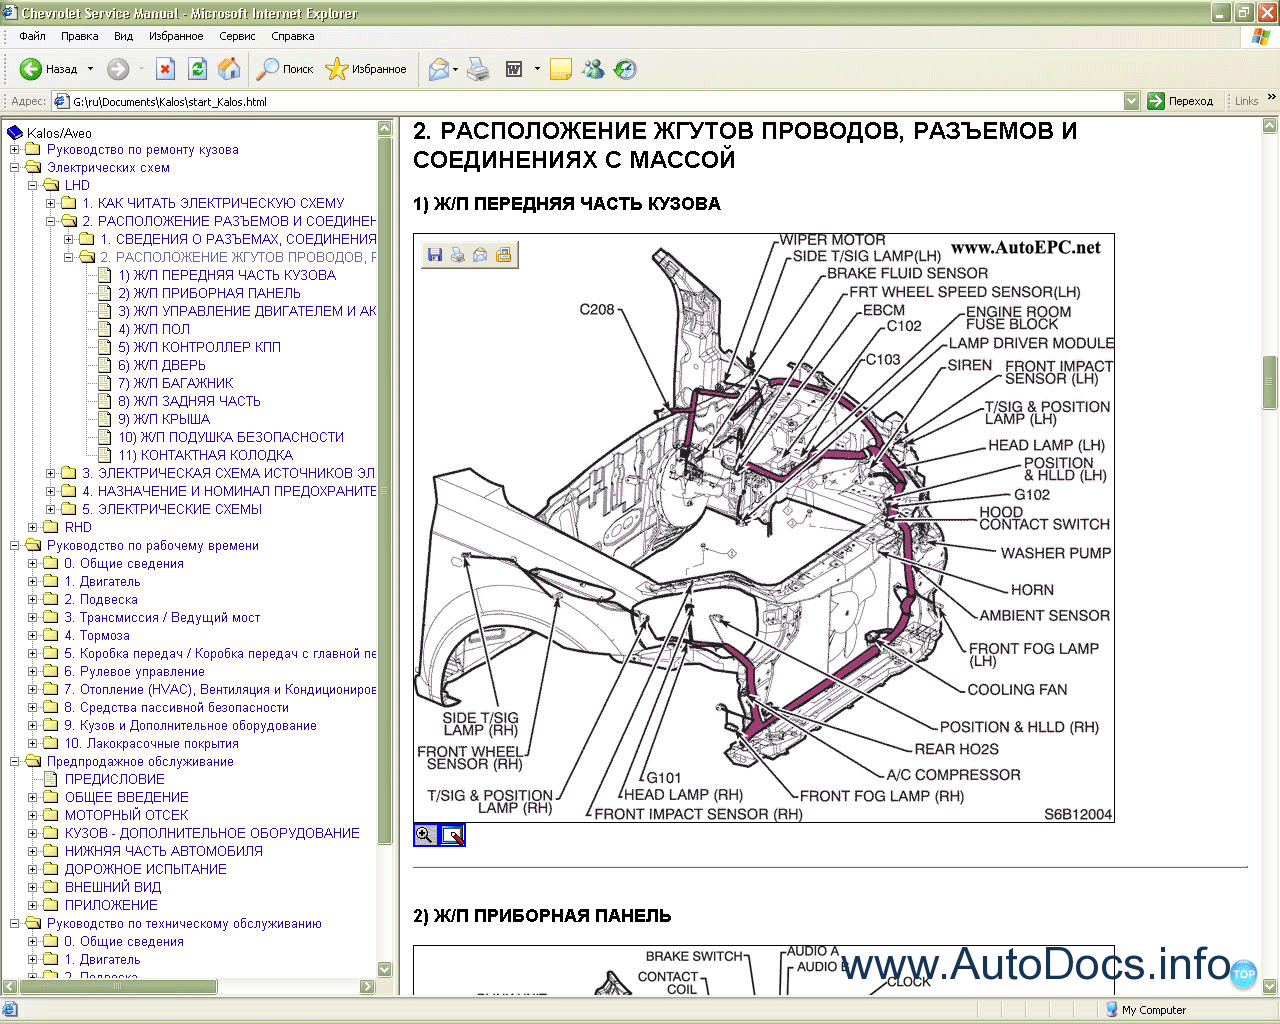 how to home electrical wiring diagrams hair color placement diagram chevrolet europe tis 2011 new models repair manual order & download